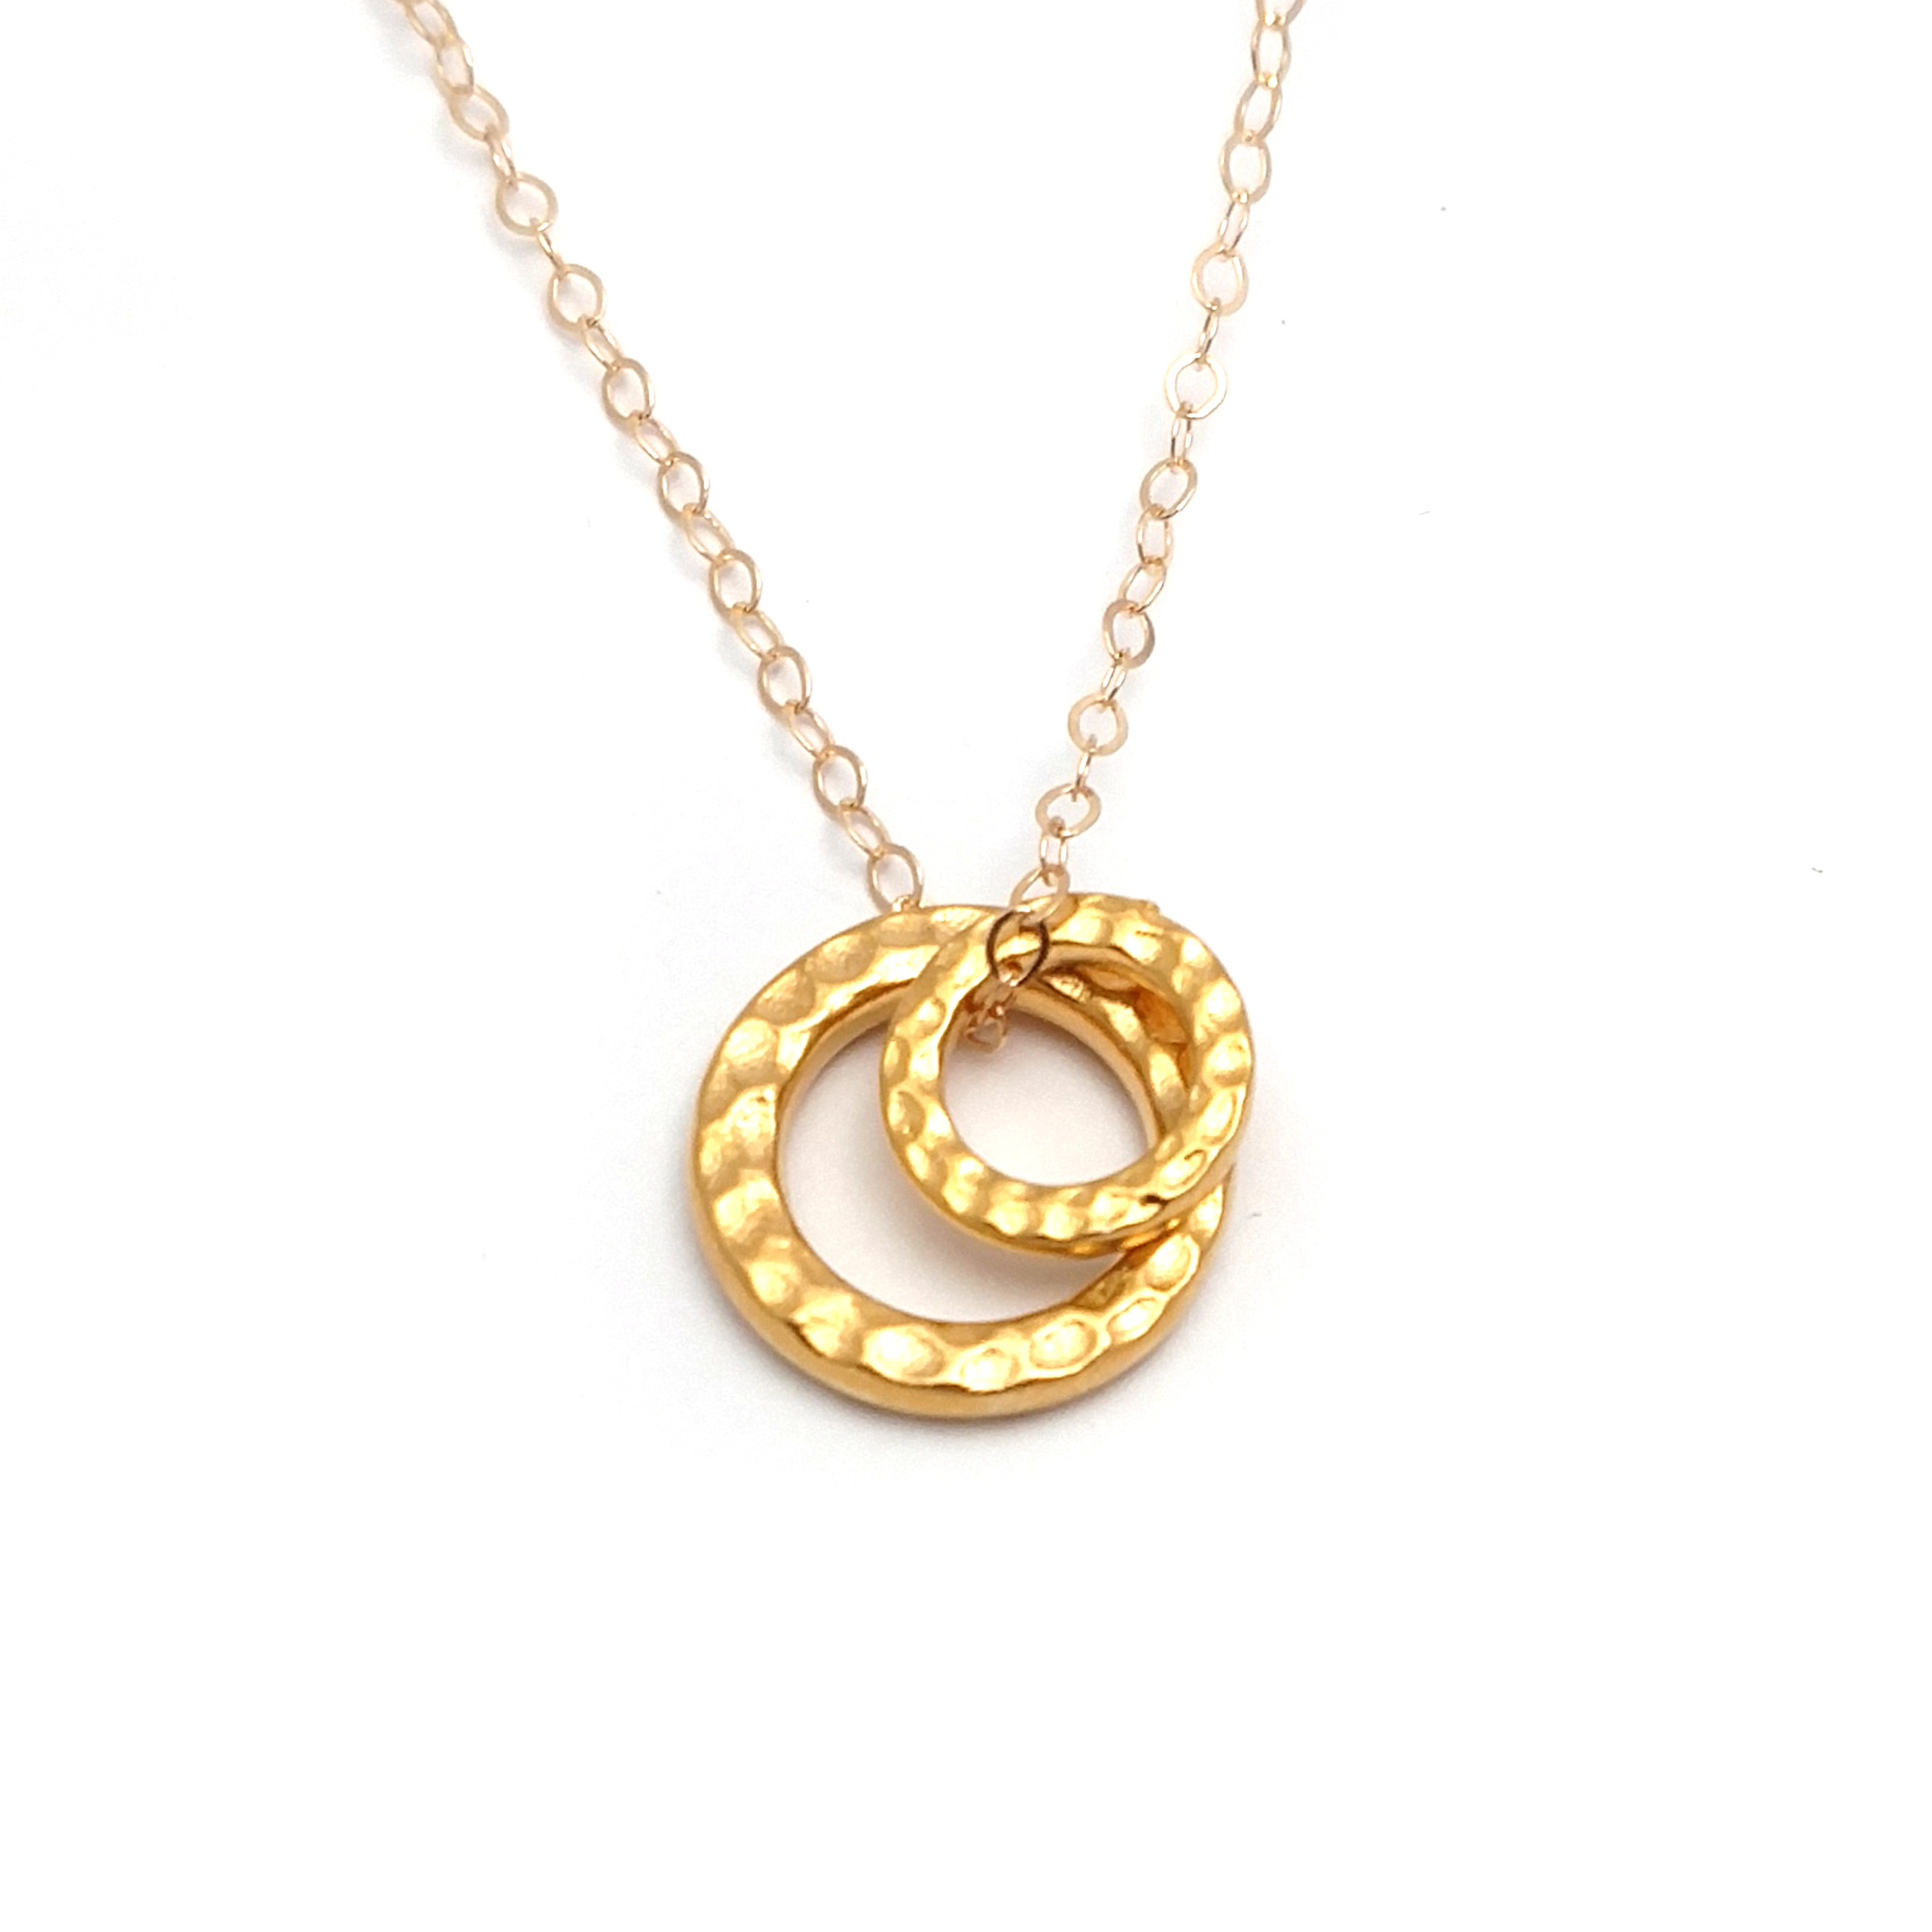 Double hammered ring 14k gold filled necklace soasa designs for Gold filled jewelry